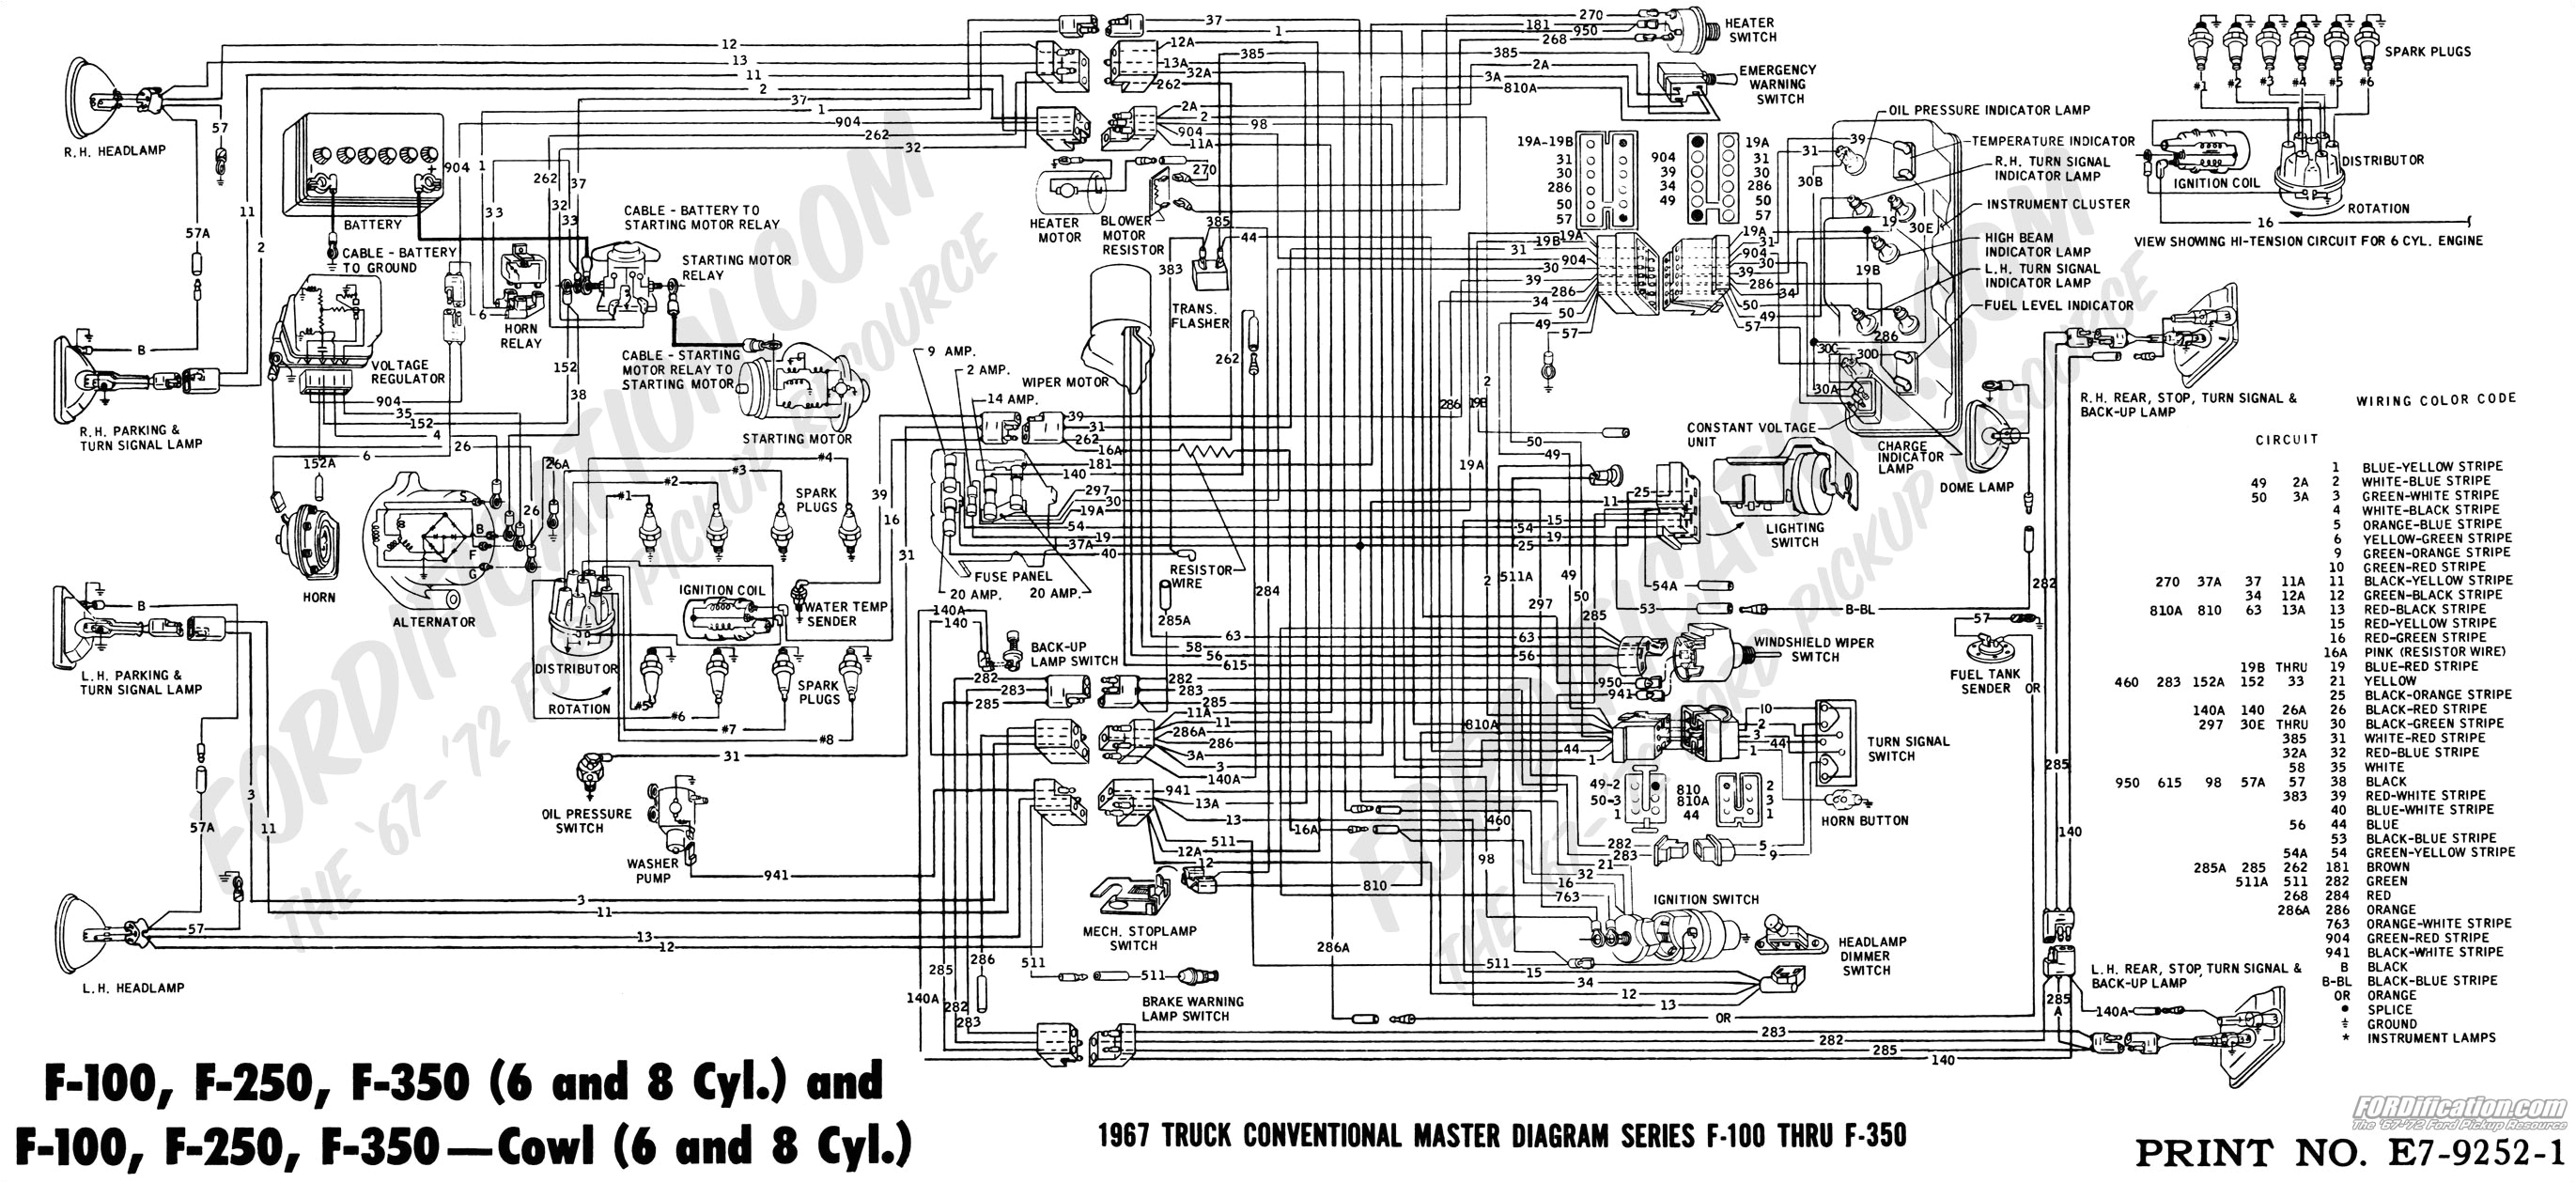 2007 ford f150 wiring diagram wiring diagram name 2007 ford f150 headlight wiring diagram 2007 ford